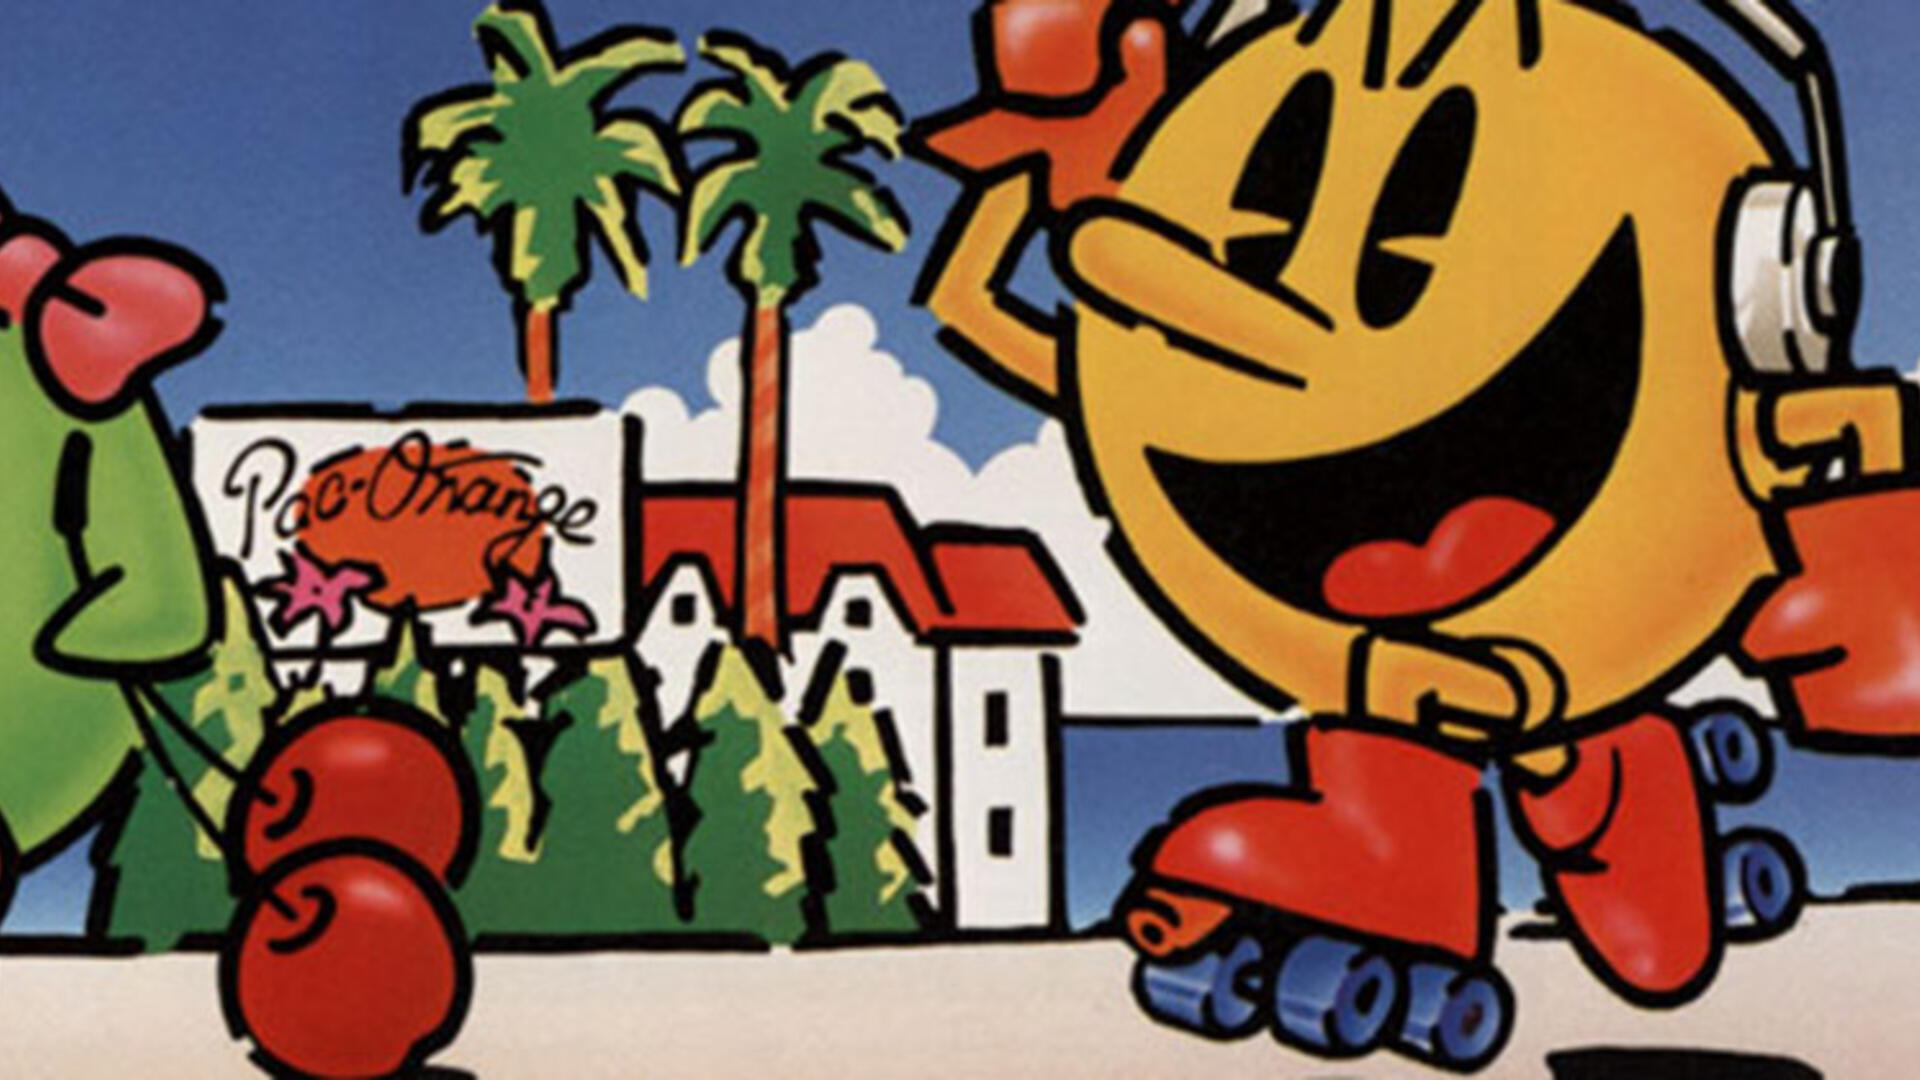 Remembering Pac & Pal, Pac-Man's Strangest Arcade Adventure